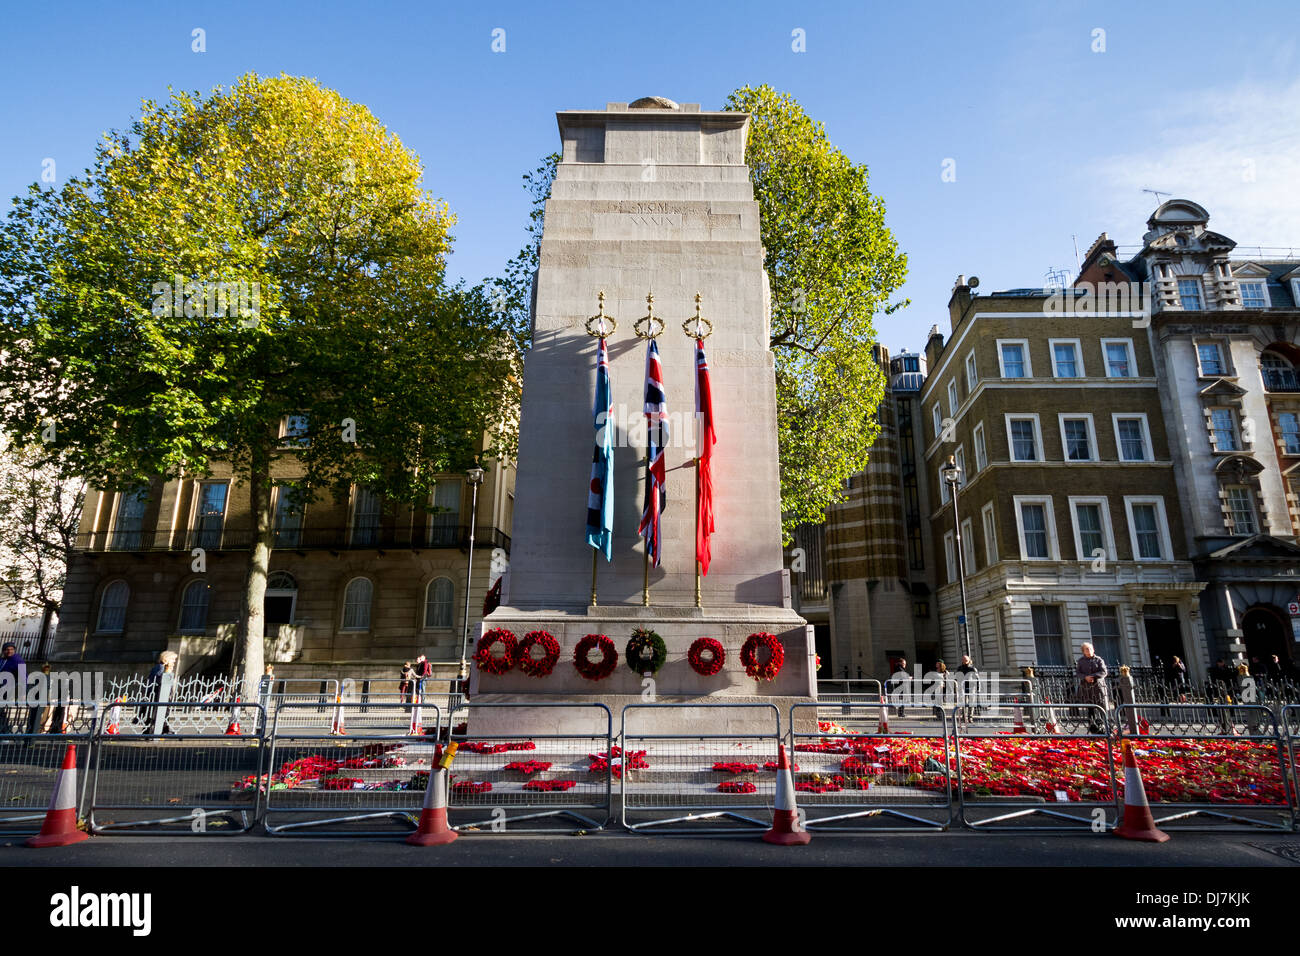 Poppy wreaths laid by the war memorial Cenotaph in Whitehall, London. - Stock Image